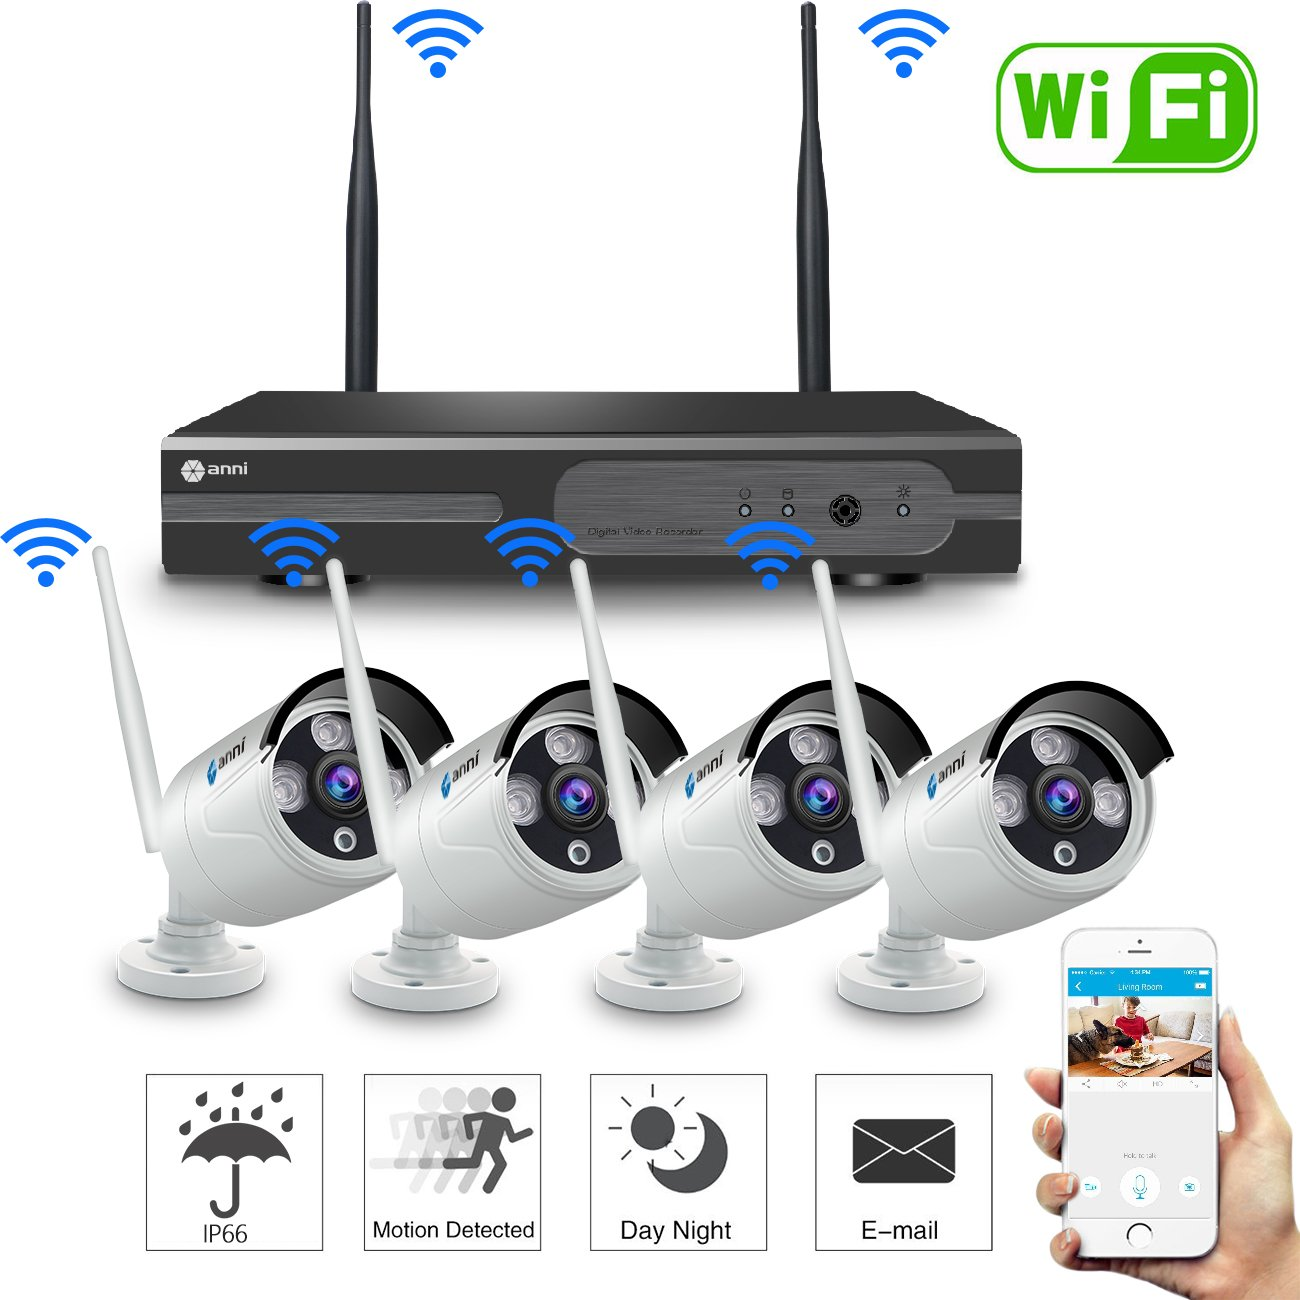 Anni 720P 8CH HD Wireless Security Camera System WiFi NVR Kit CCTV Surveillance Systems,(4) 1.0MP Outdoor/Indoor Weatherproof Wireless Bullet IP Cameras,65ft Night Vision, P2P,Motion Detection,NO HDD by anni